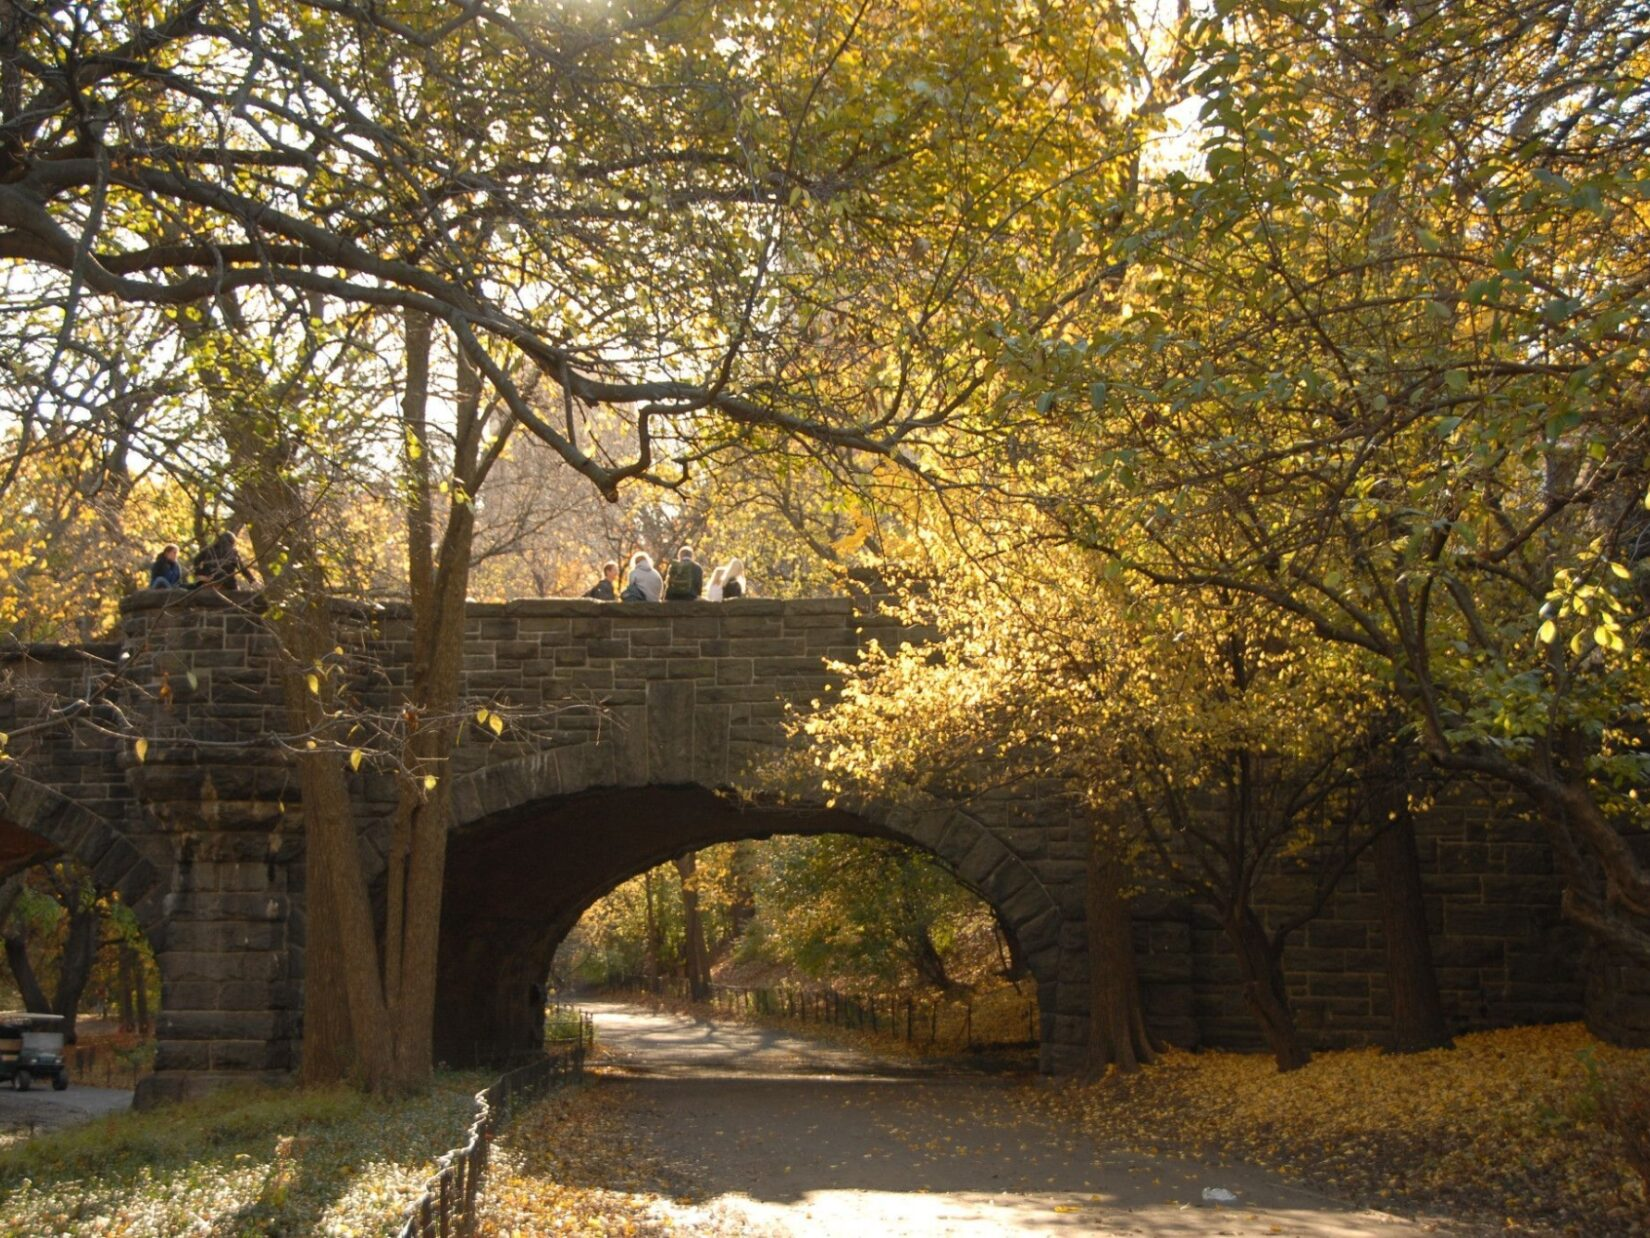 The bridge is framed in weak autumn light and last-stage foliage.